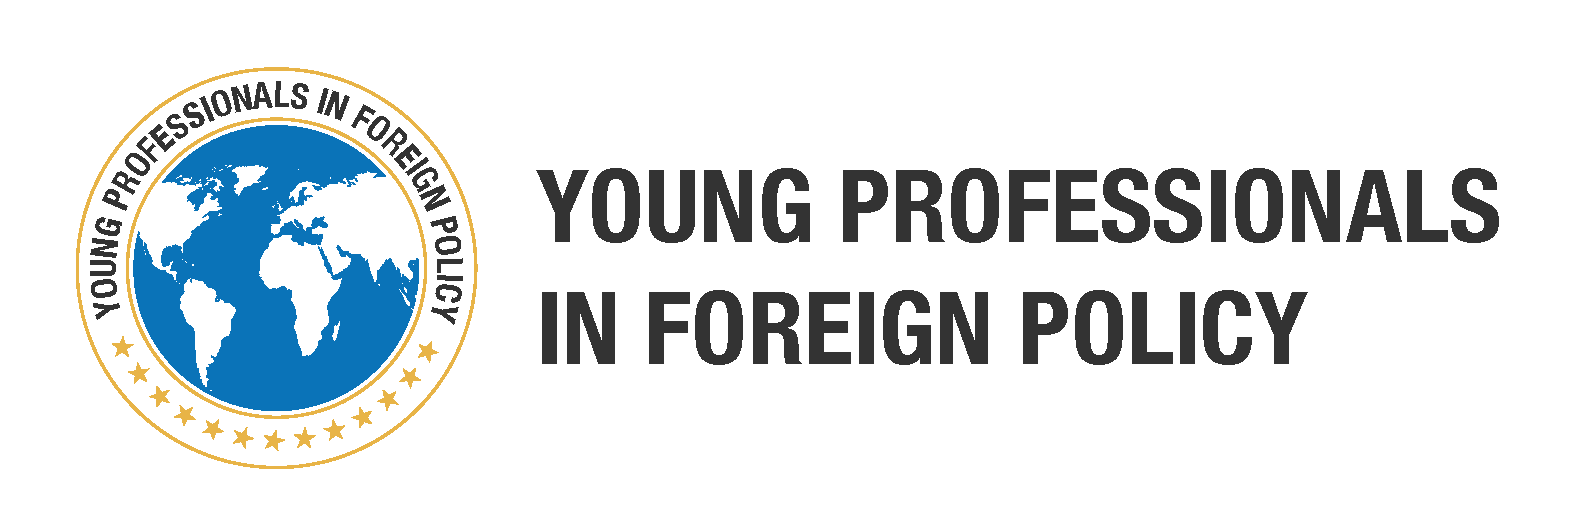 Young Professionals in Foreign Policy logo